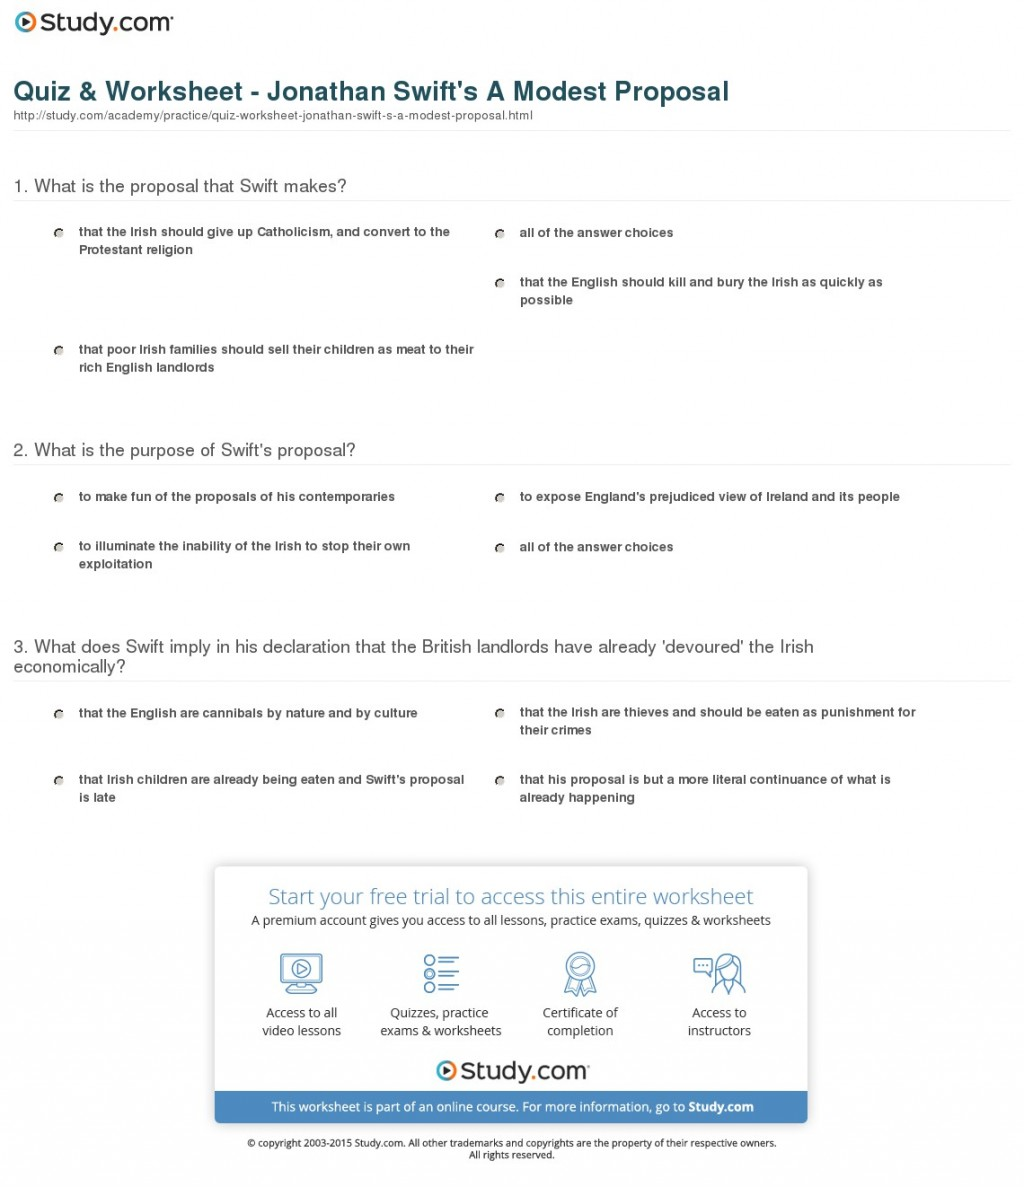 004 Essay Example Quiz Worksheet Jonathan Swift S Modest Astounding A Proposal Ideas Summary Large